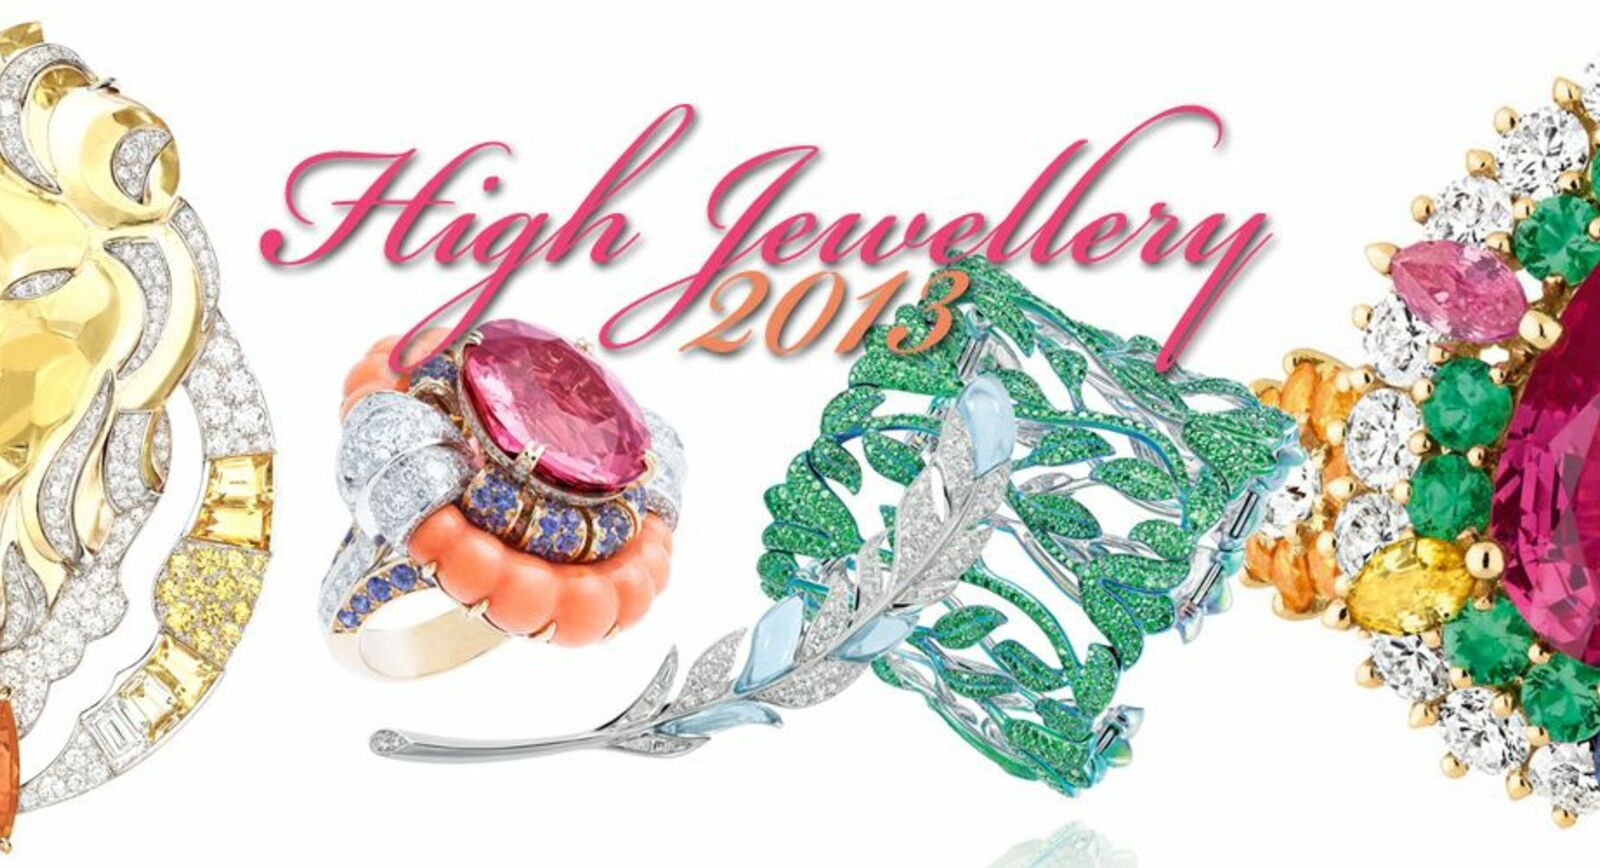 The Premier League: High Jewellery in 2013, part 2Dior Joaillerie